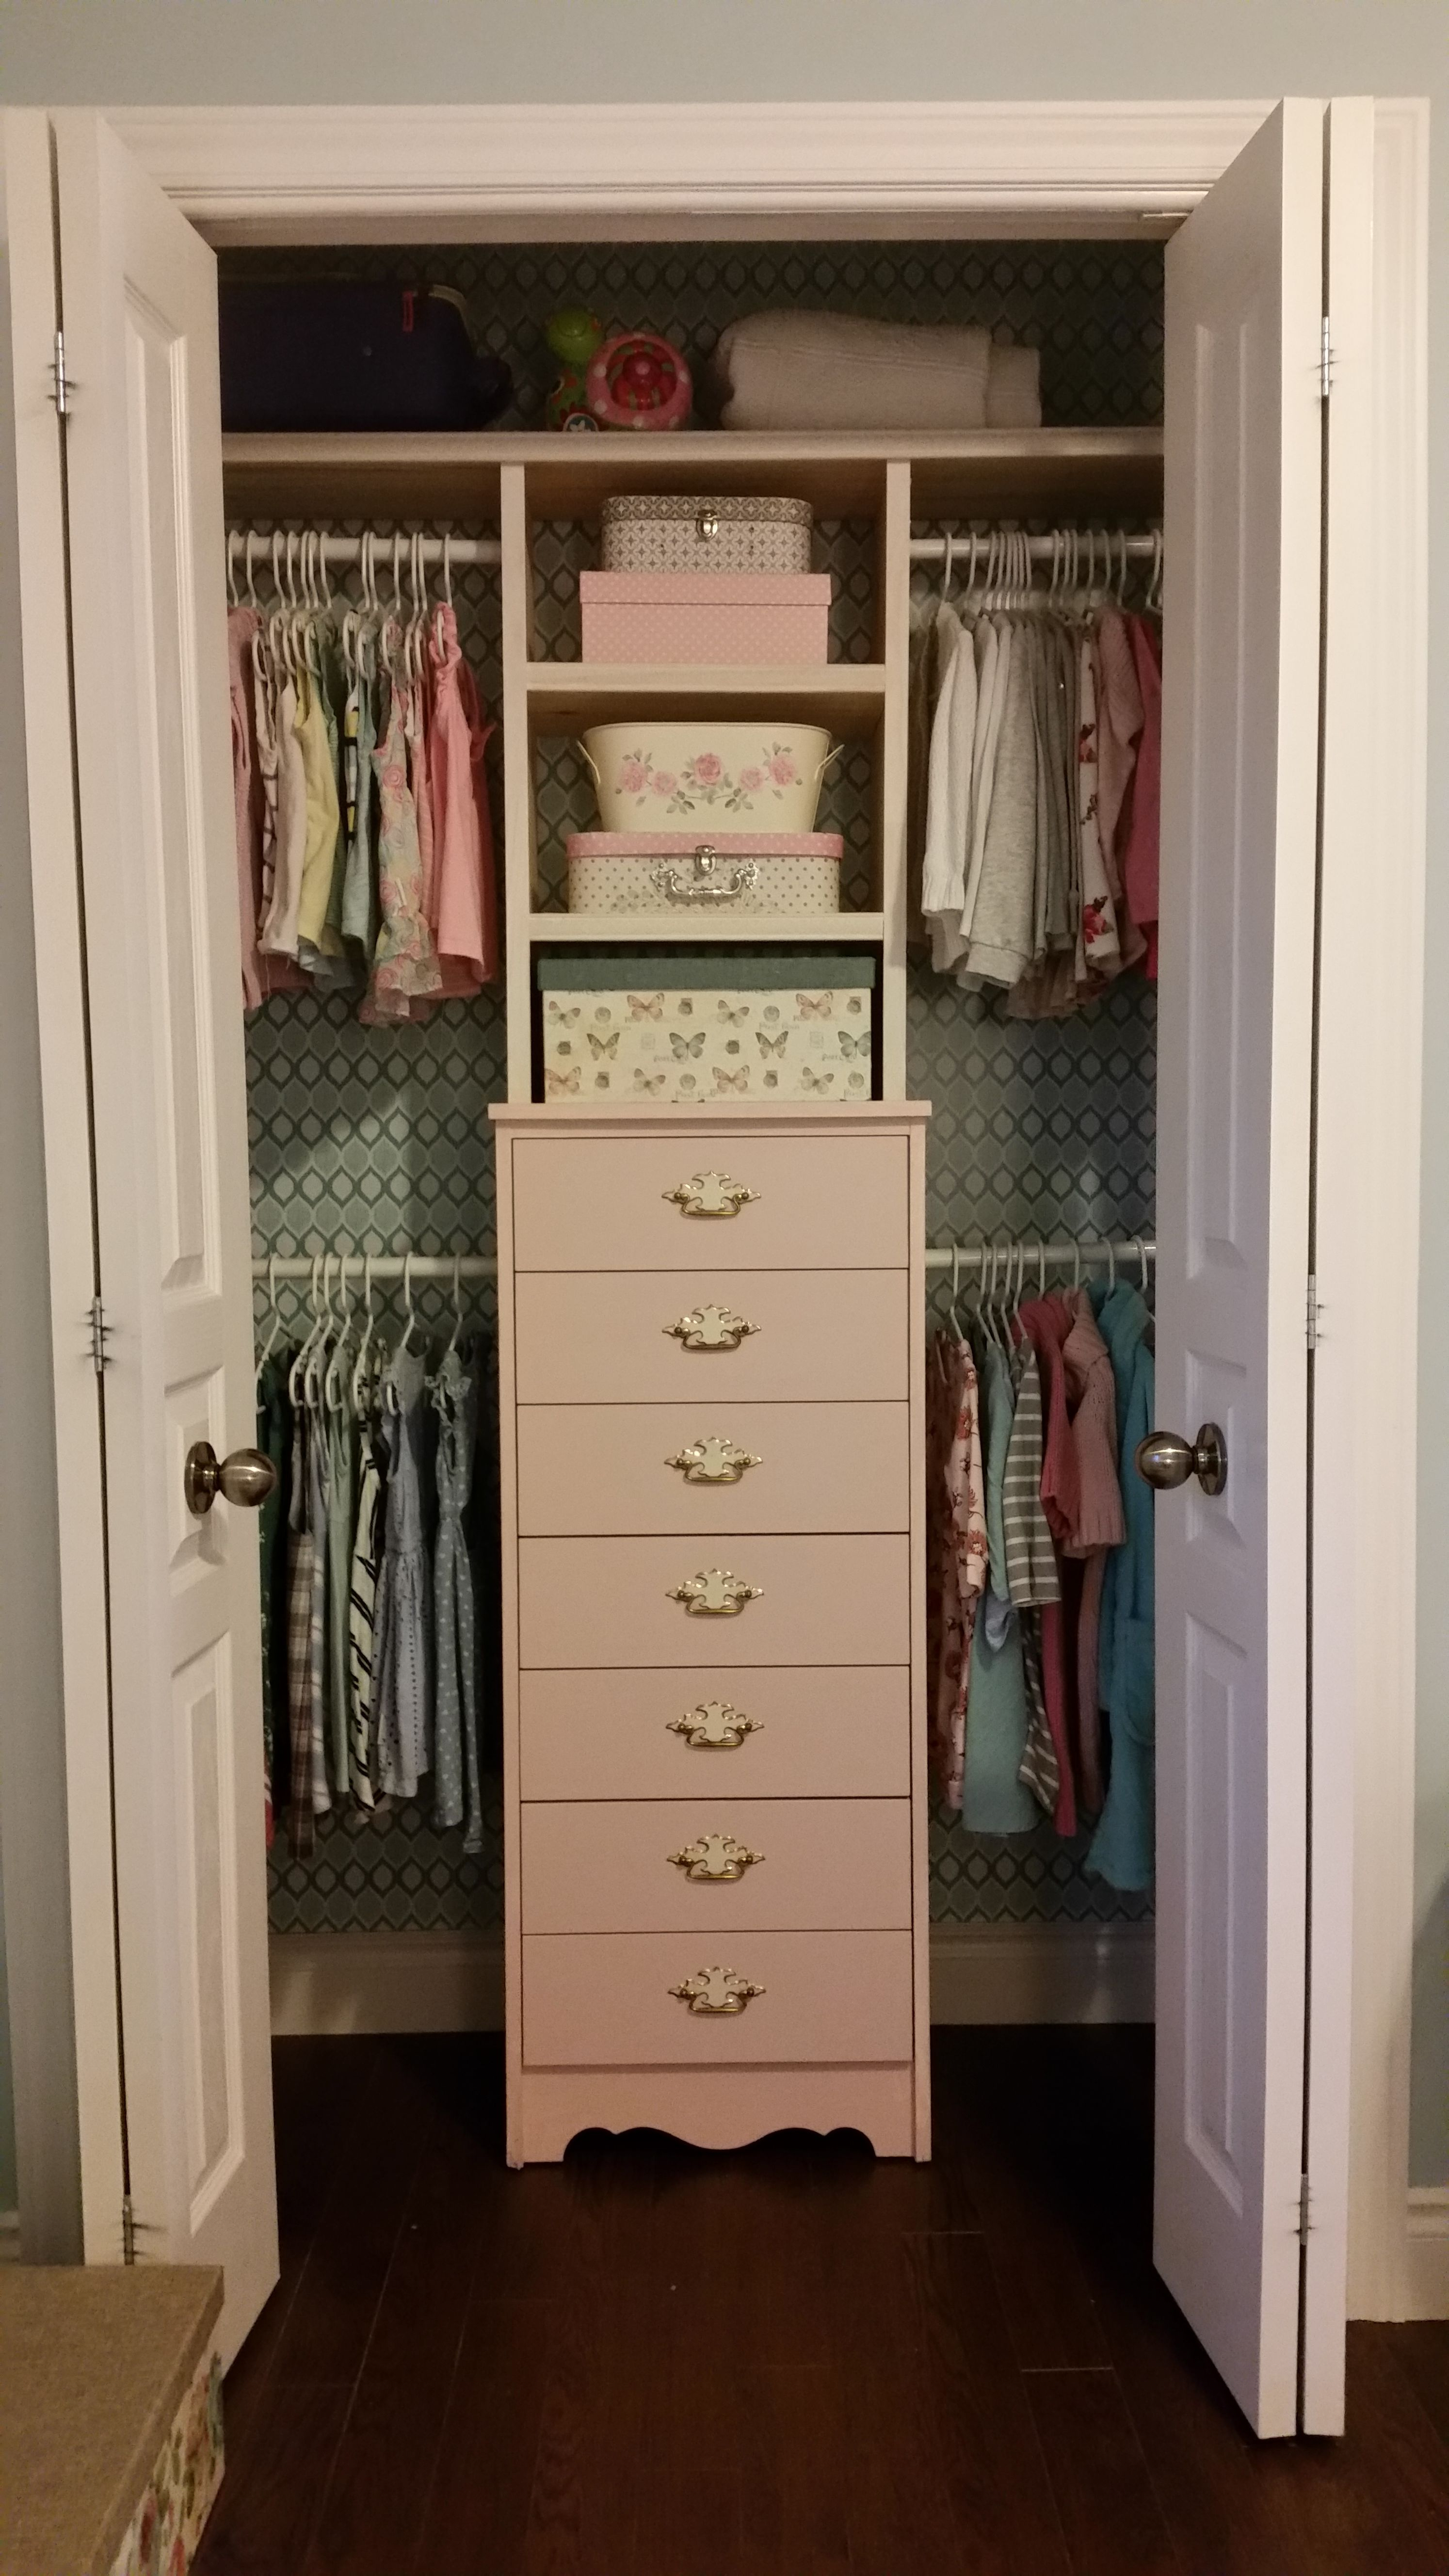 25 Most Clever Storage Ideas For Small Spaces Created By Experts Small Space Clothing Storage Clothes Storage Without A Closet Closet Organizer With Drawers